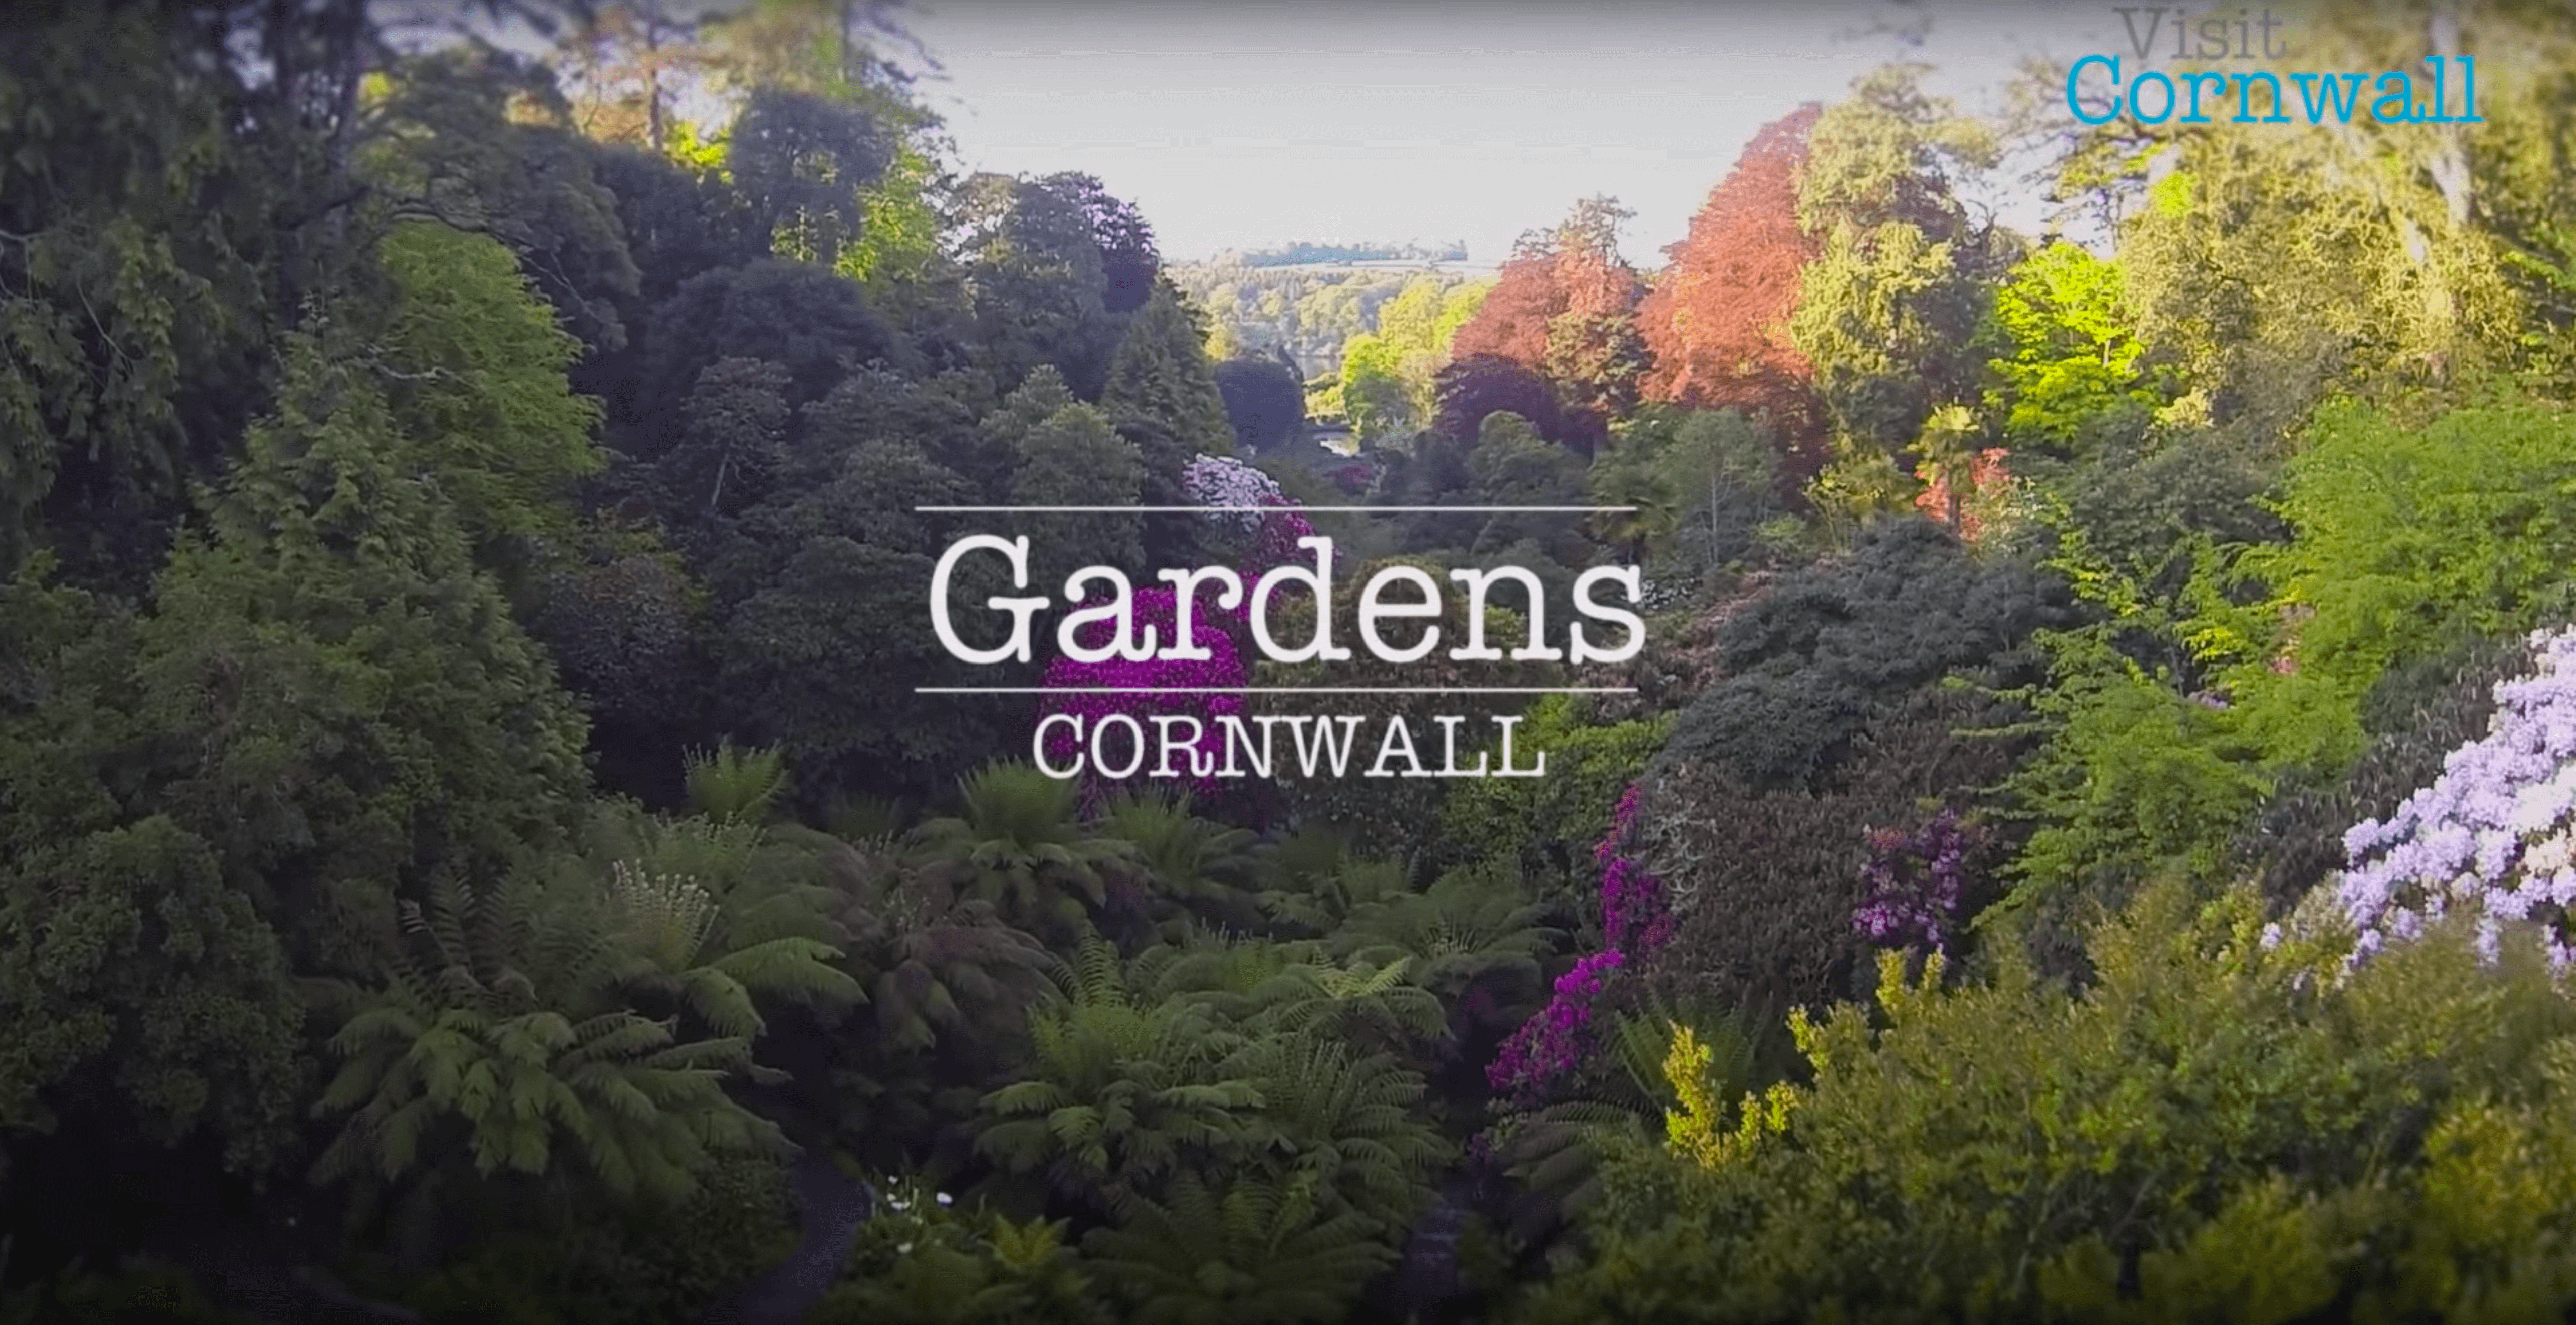 Our Visit Cornwall video gains impressive YouTube views